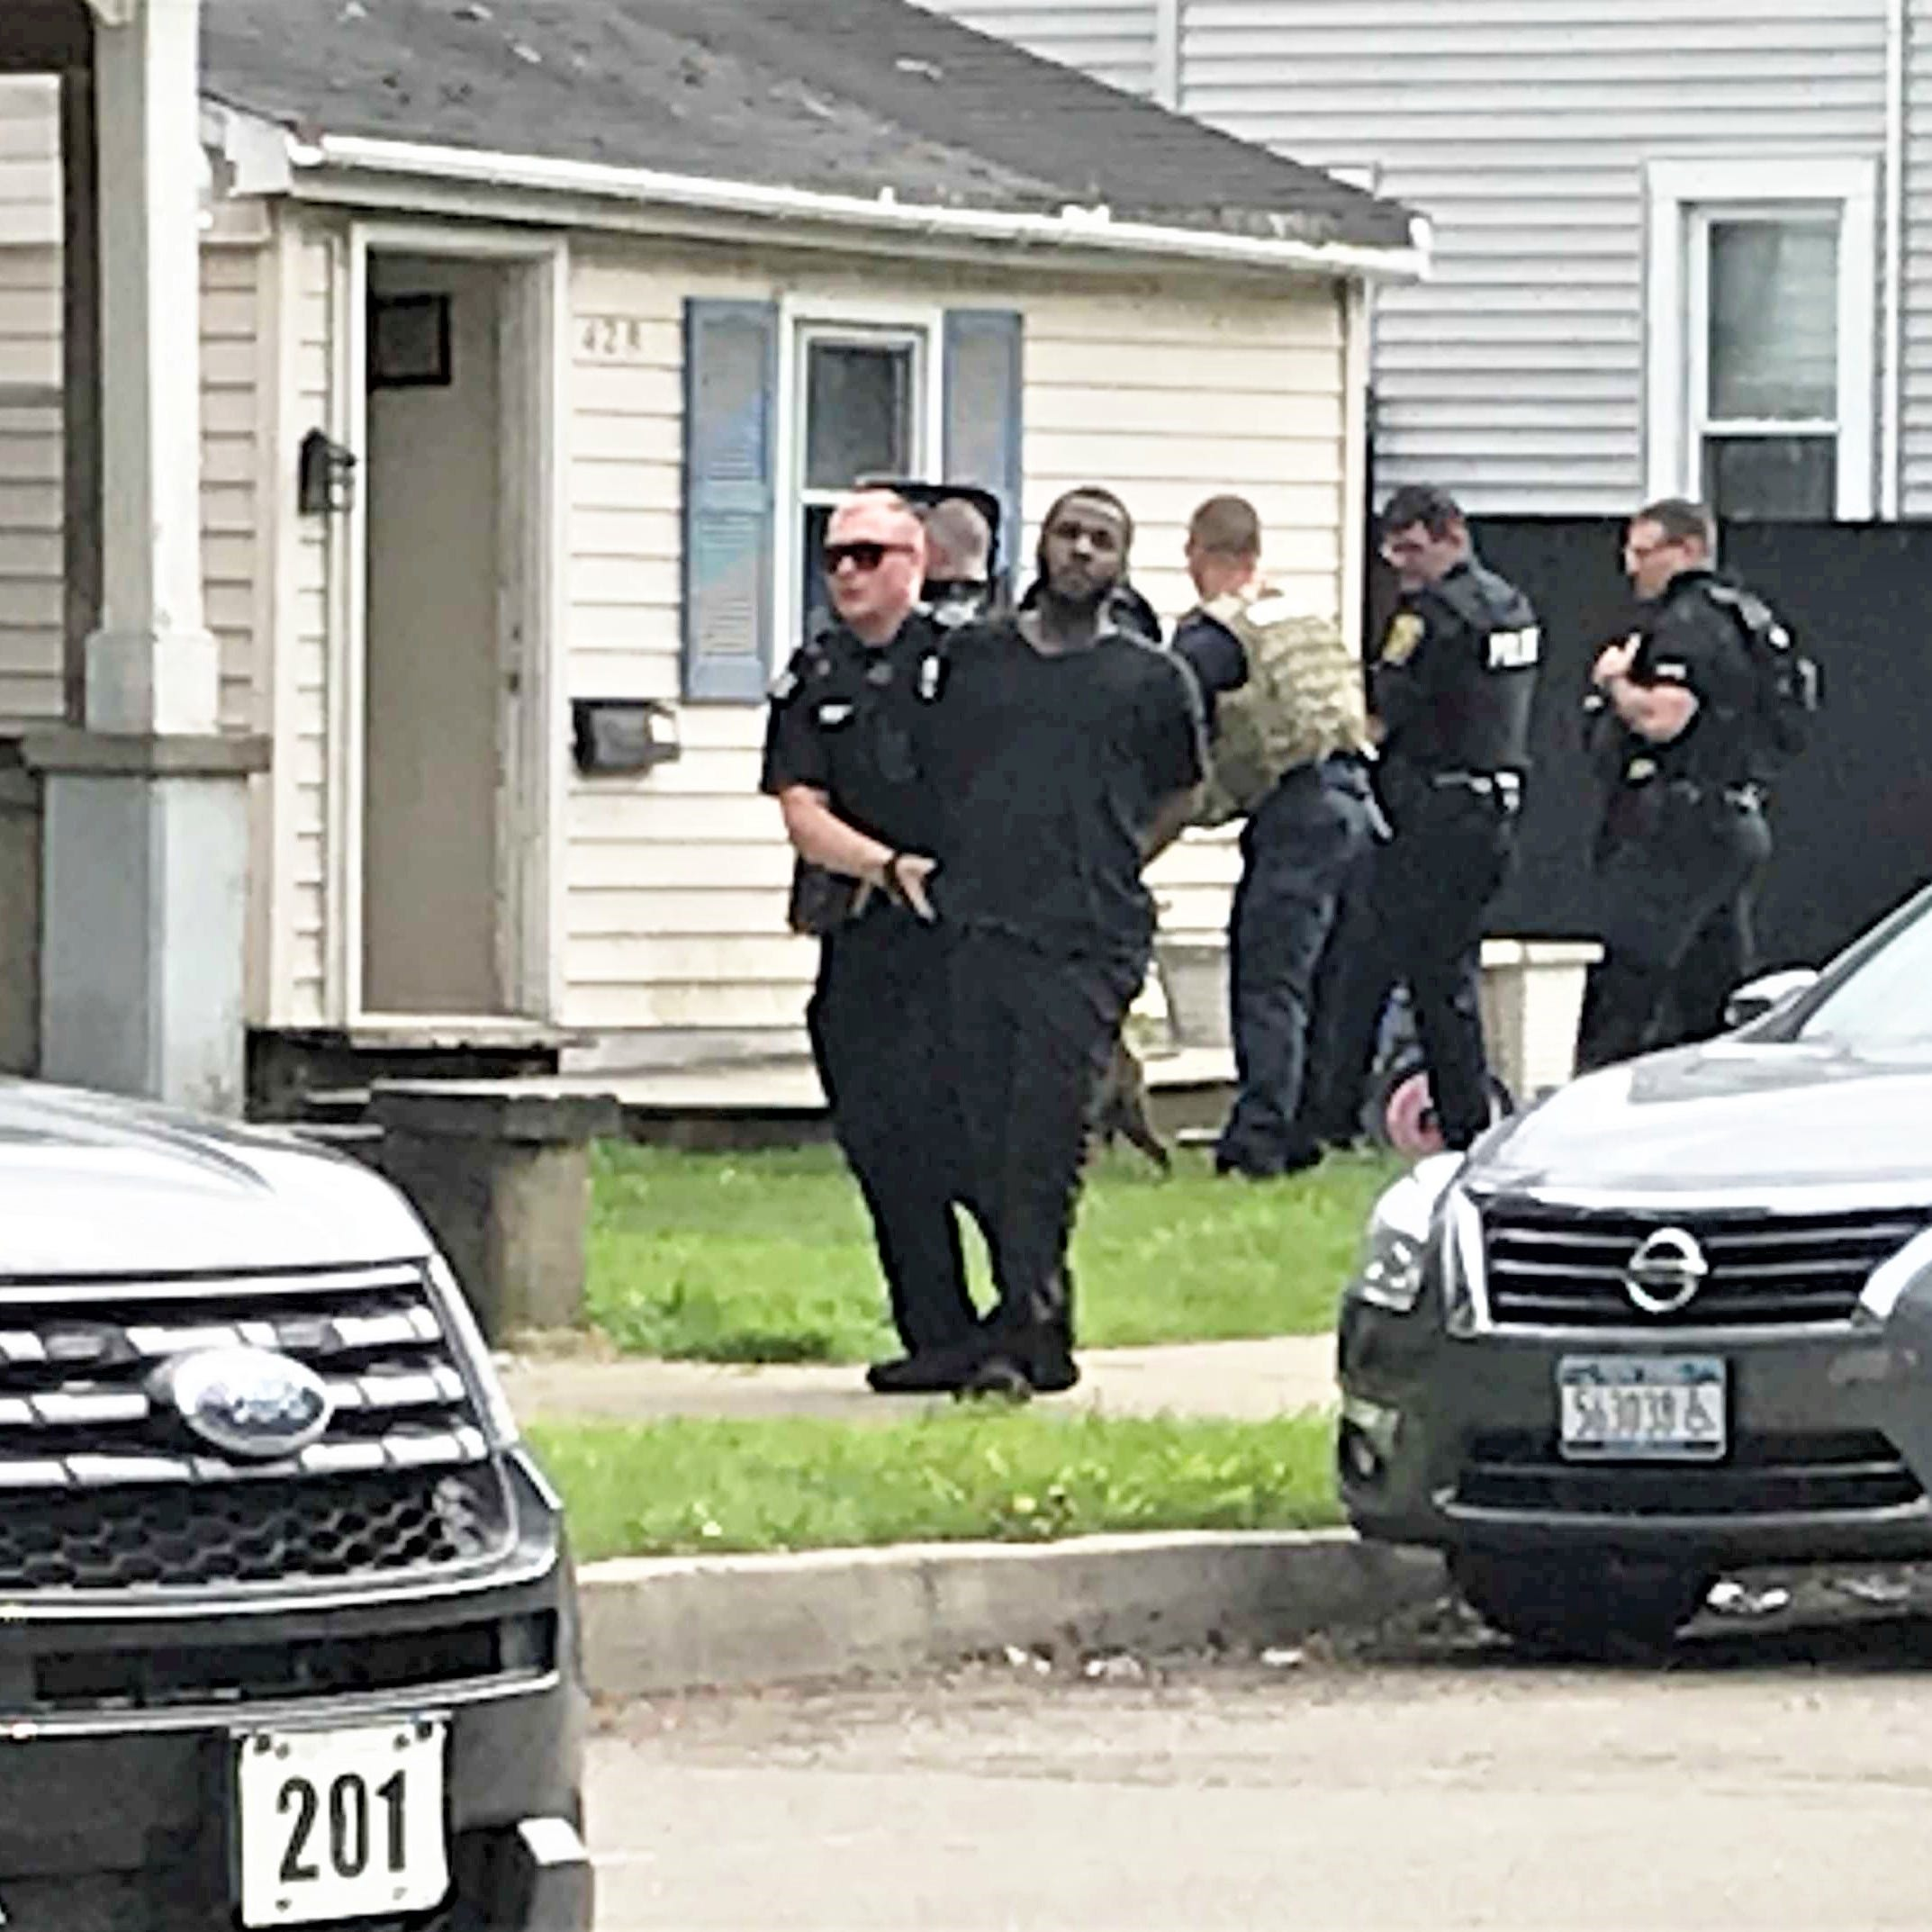 Man taken into custody after Elmira domestic incident and standoff